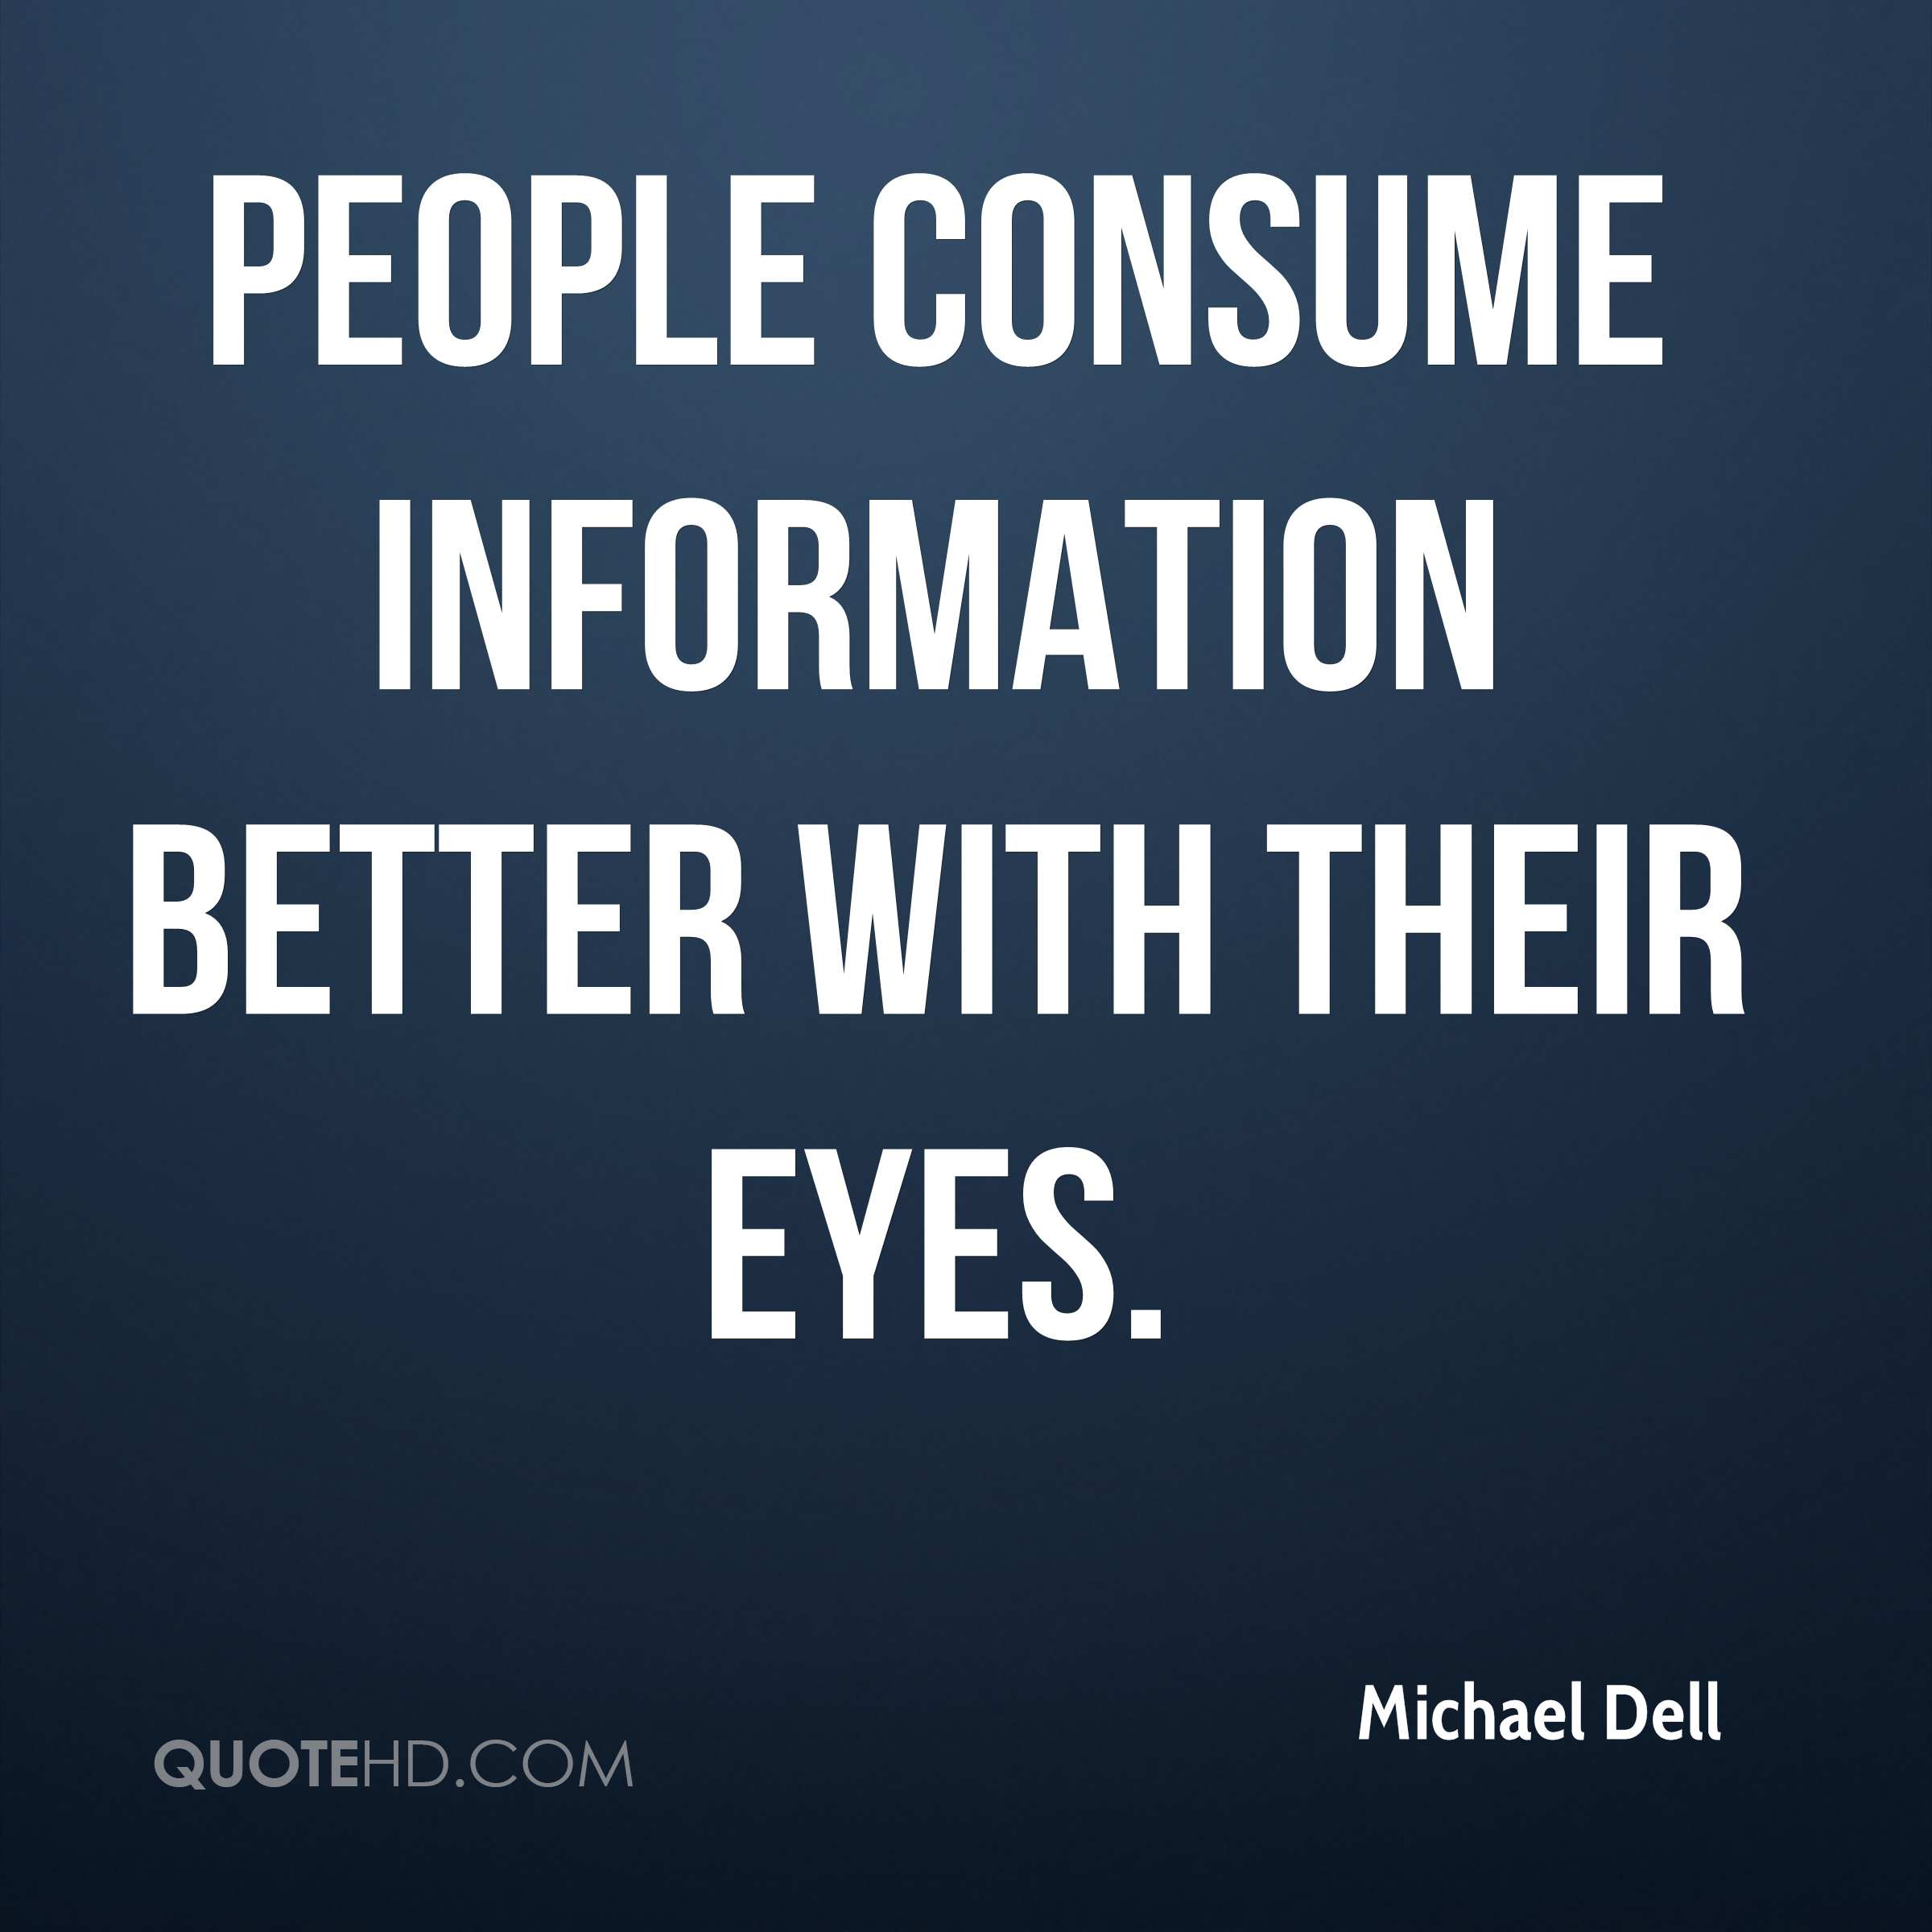 People consume information better with their eyes.